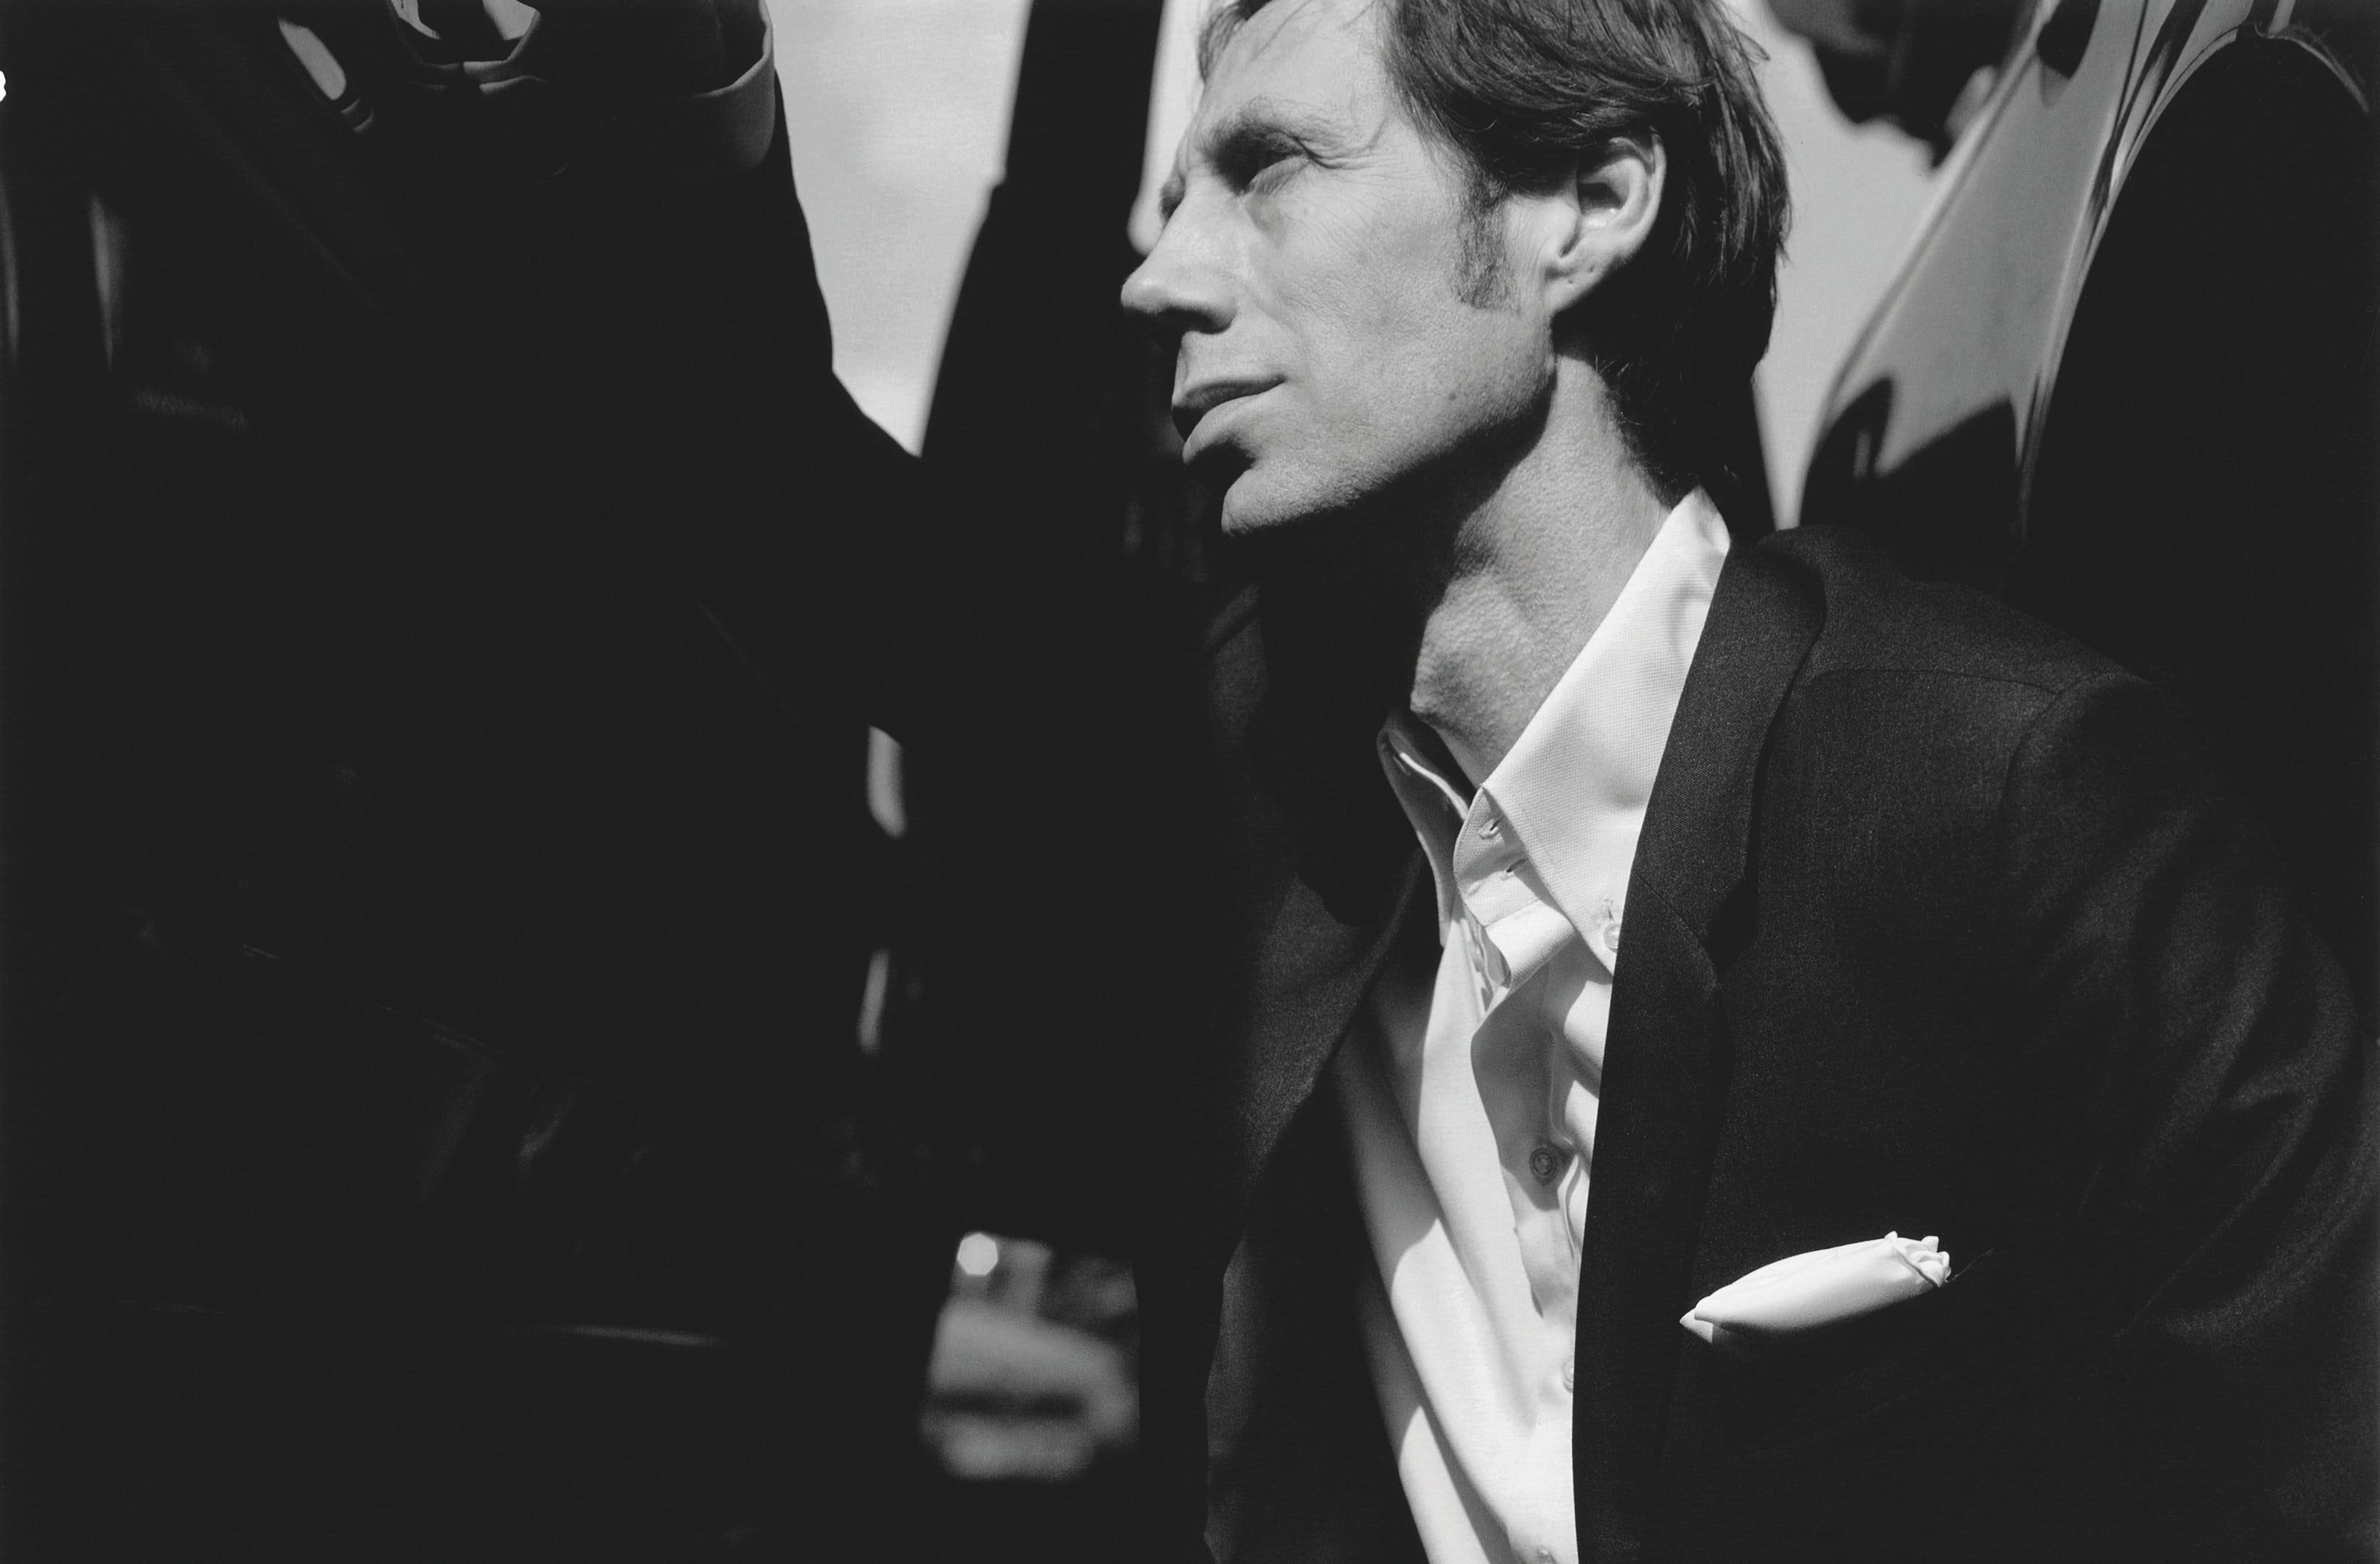 The BoF Podcast: Inside The Future of Fashion Image Making with Nick Knight